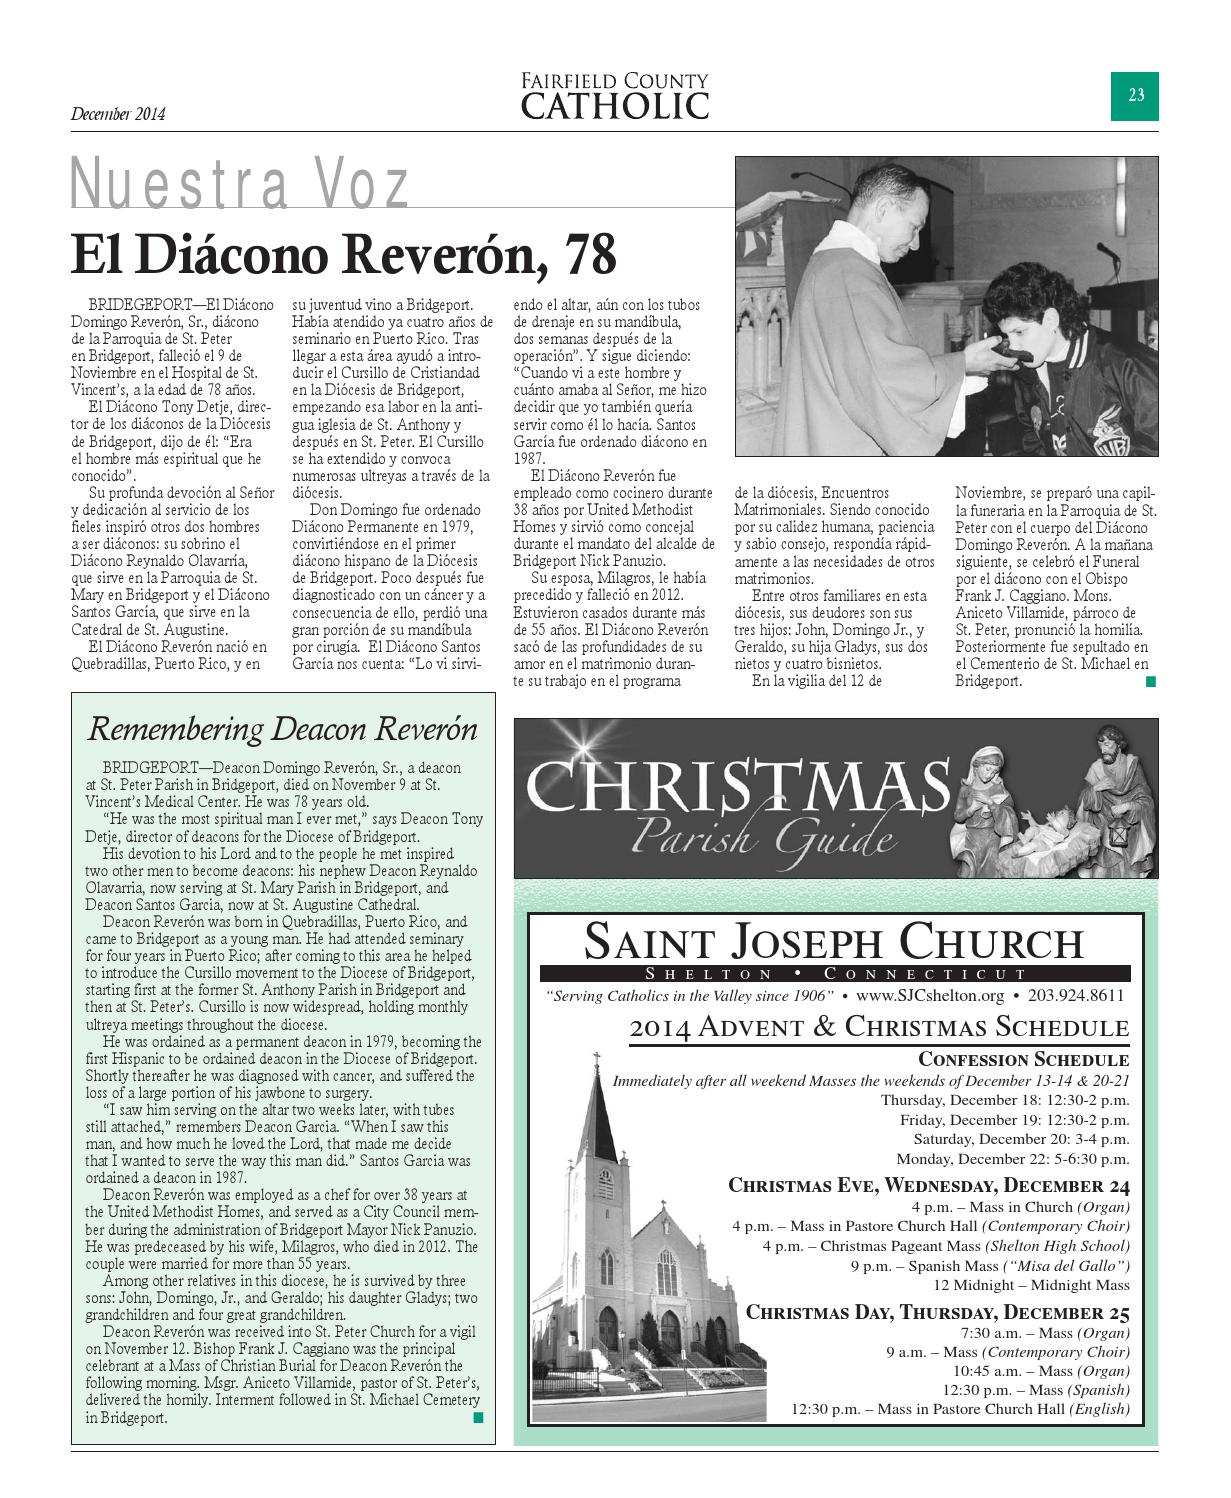 Fairfield County Catholic - December 2014 by The Diocese of